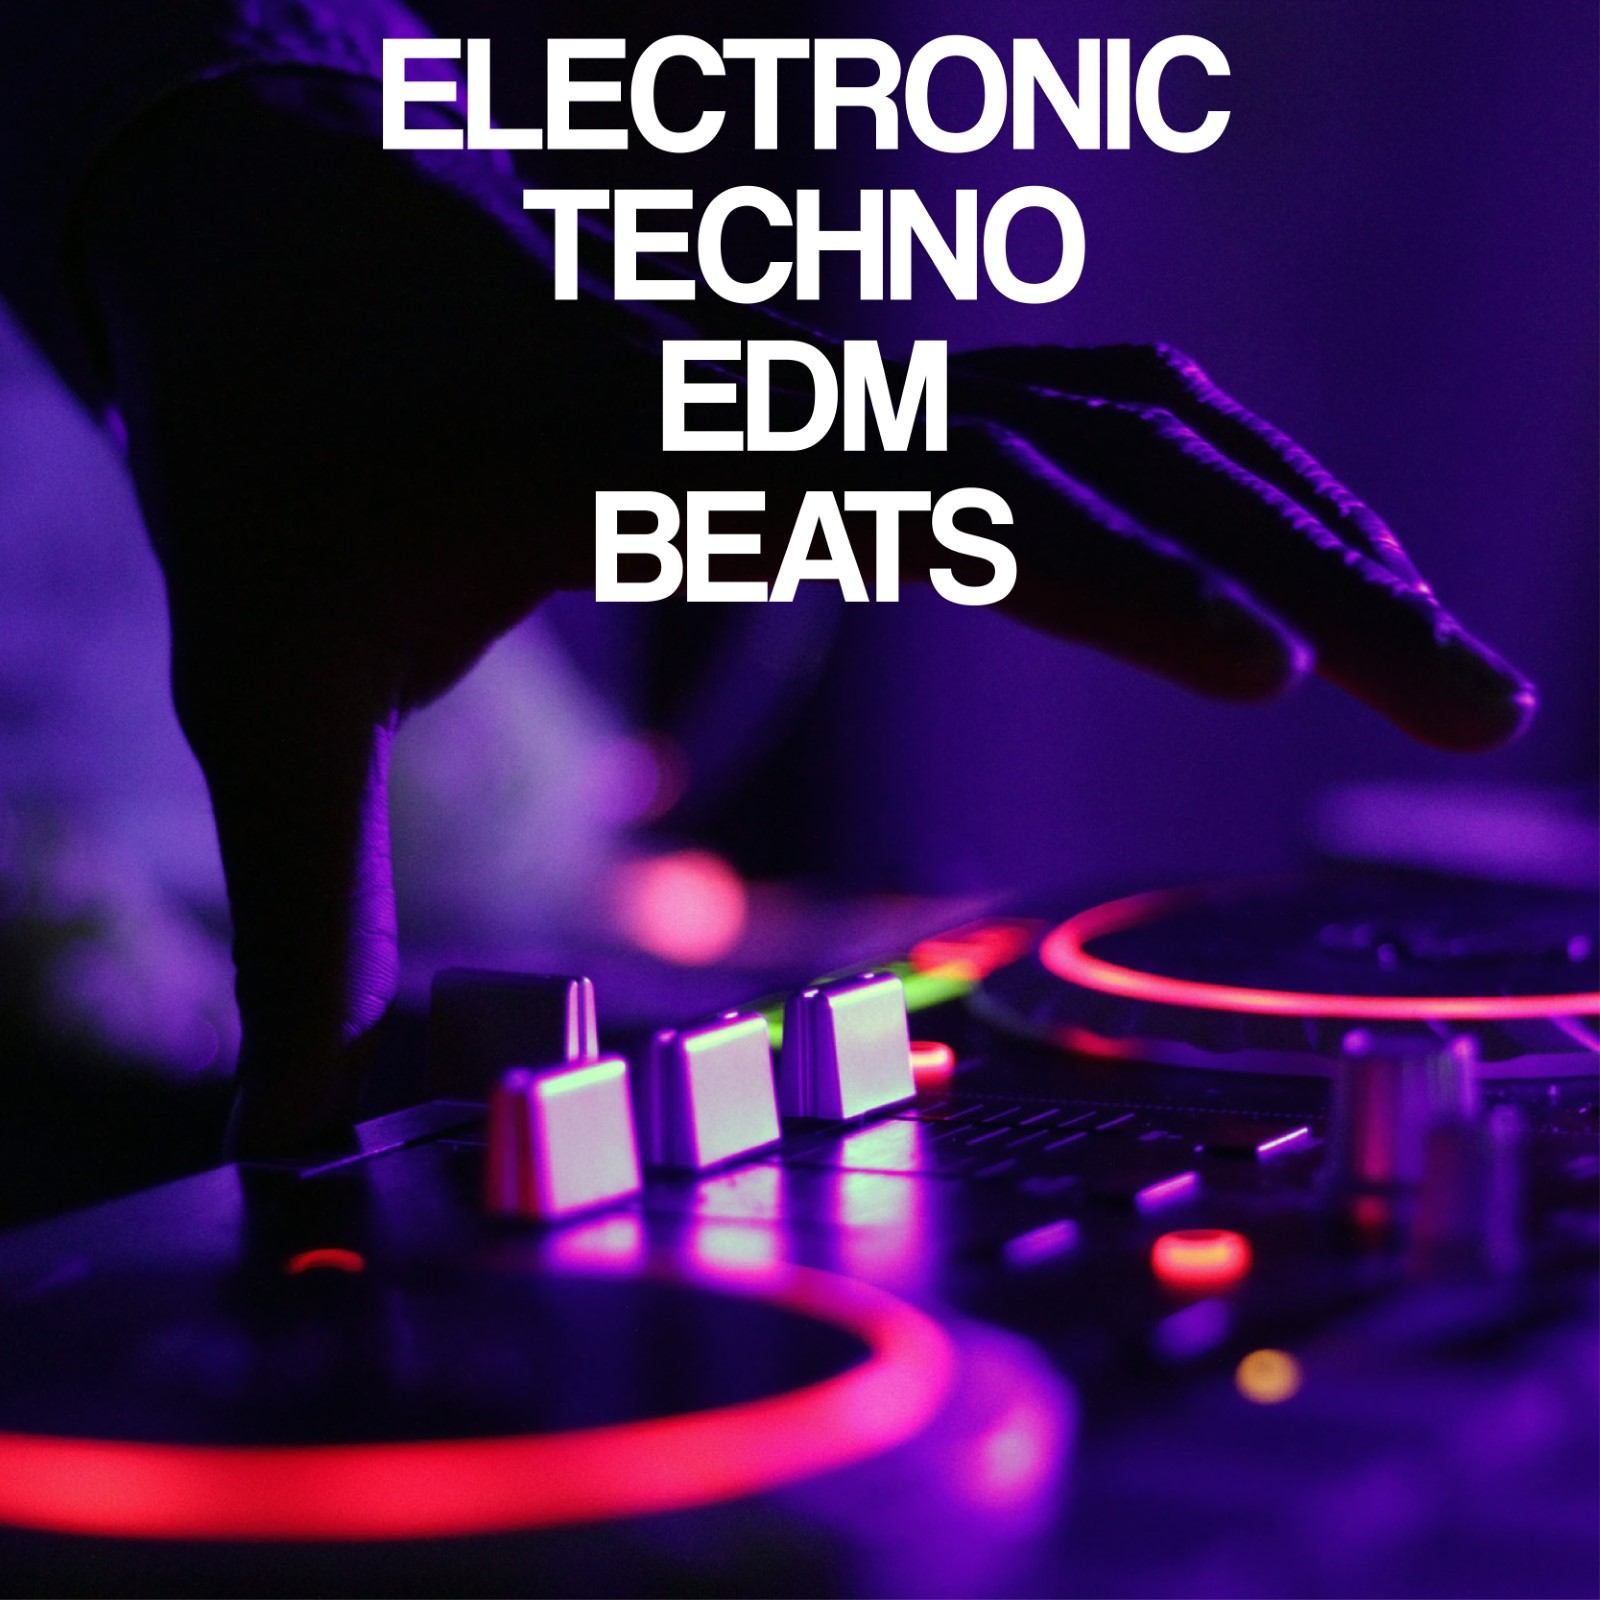 - All sorts of electronic music. Still very melodic and catchy. Variations from darker minimal techno to happy uplifting EDM.